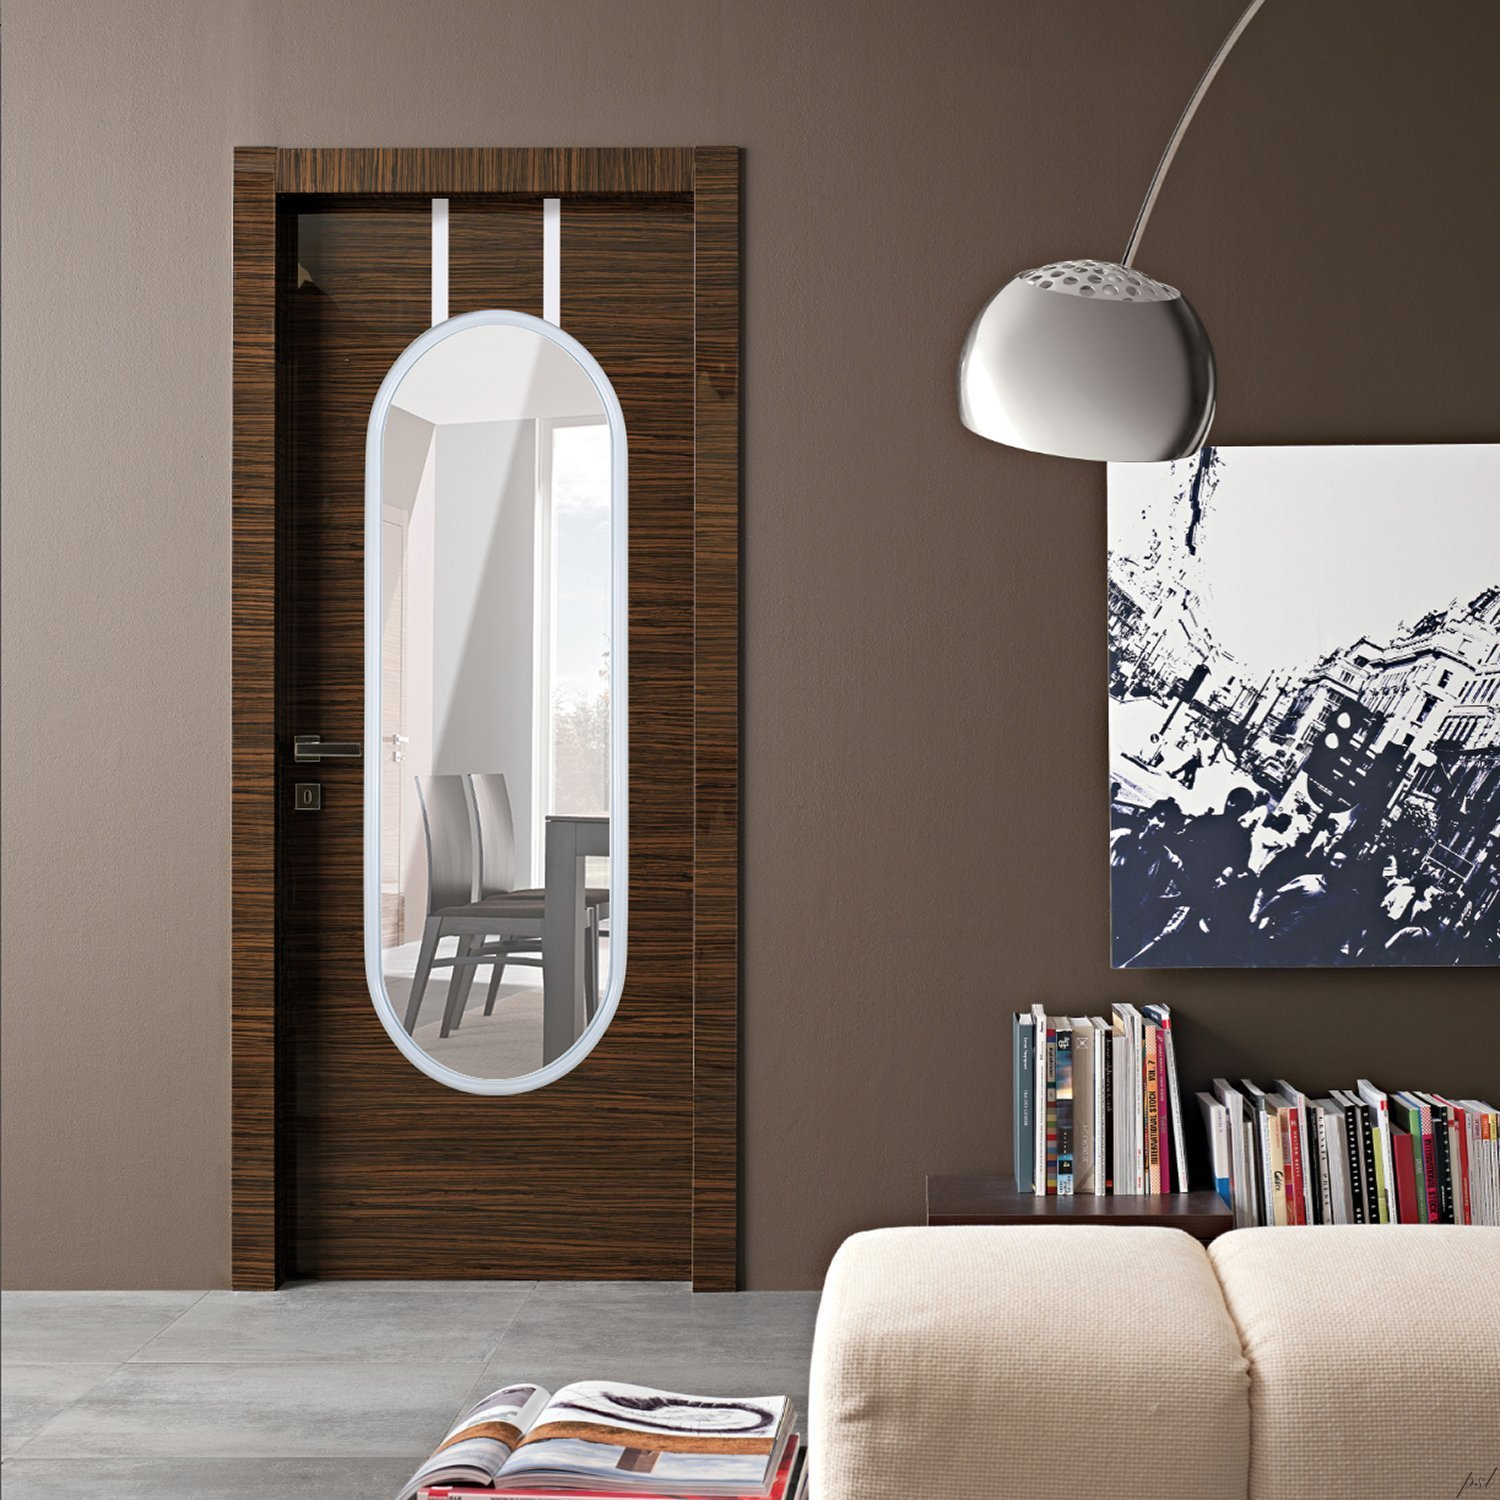 Over-the-door mirror with rounded edges